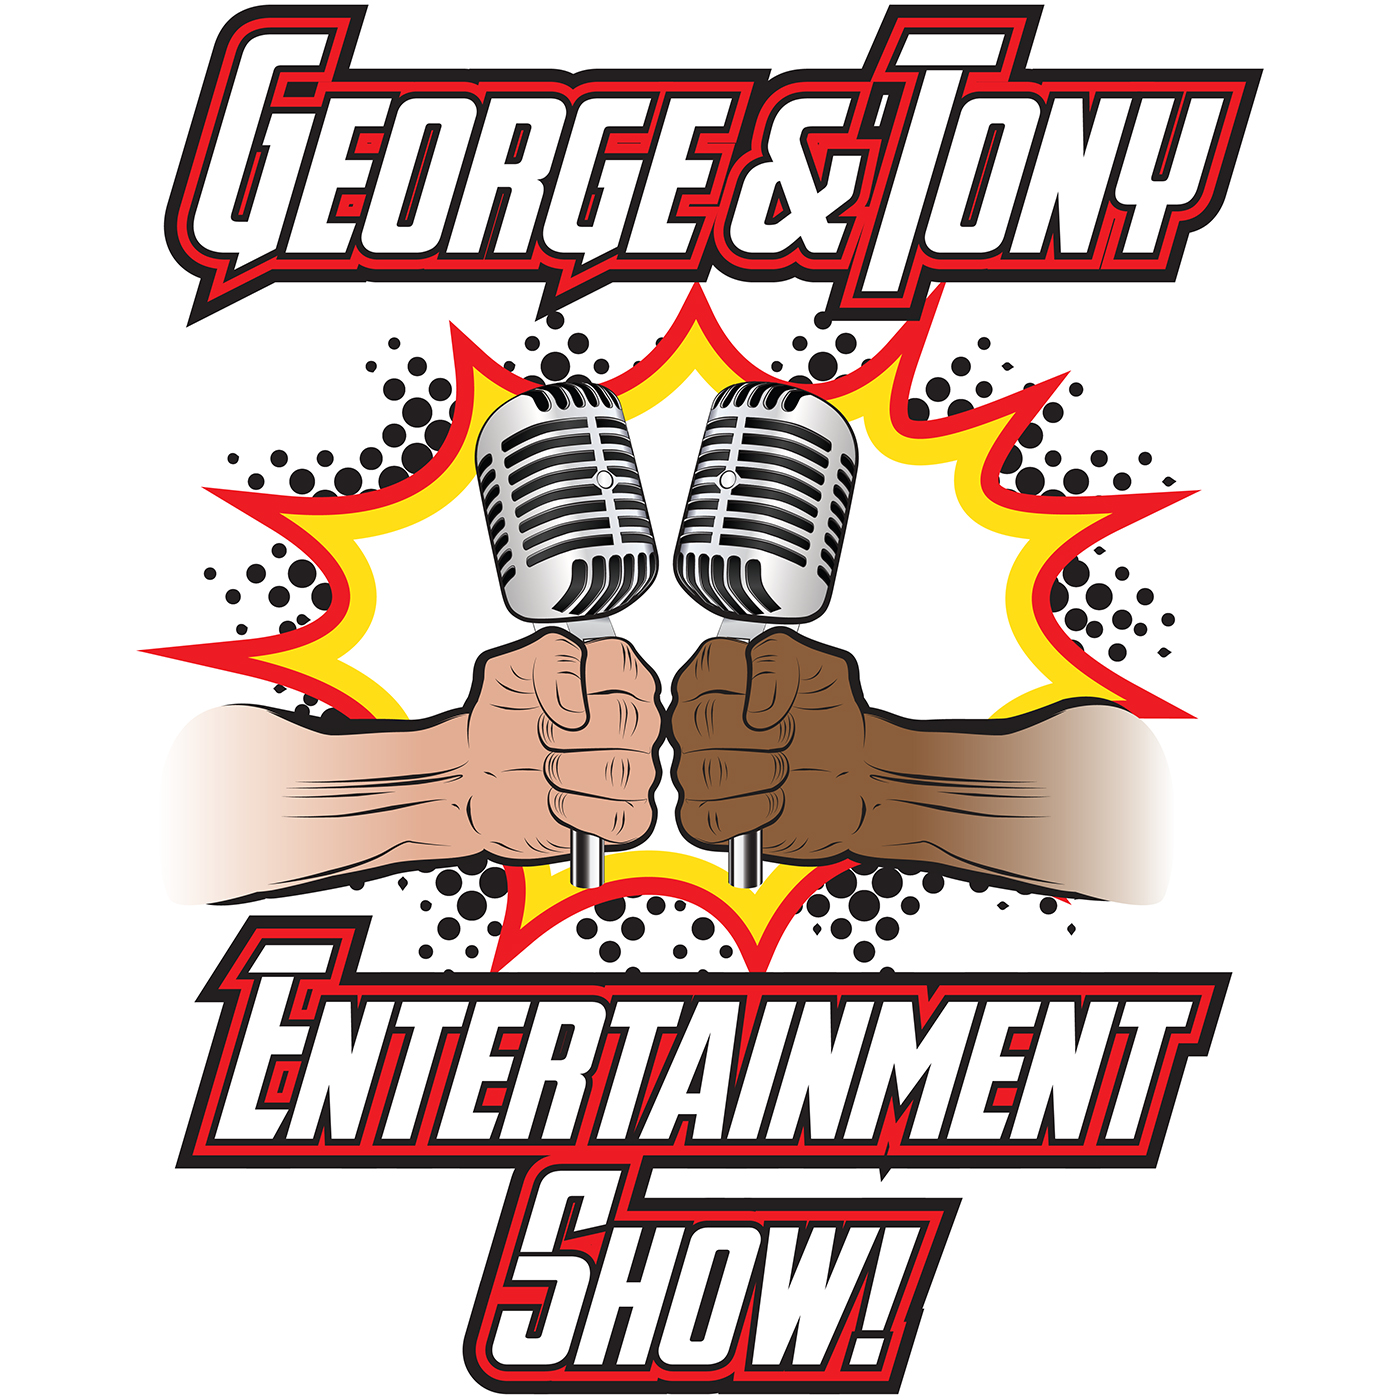 George and Tony Entertainment Show #152